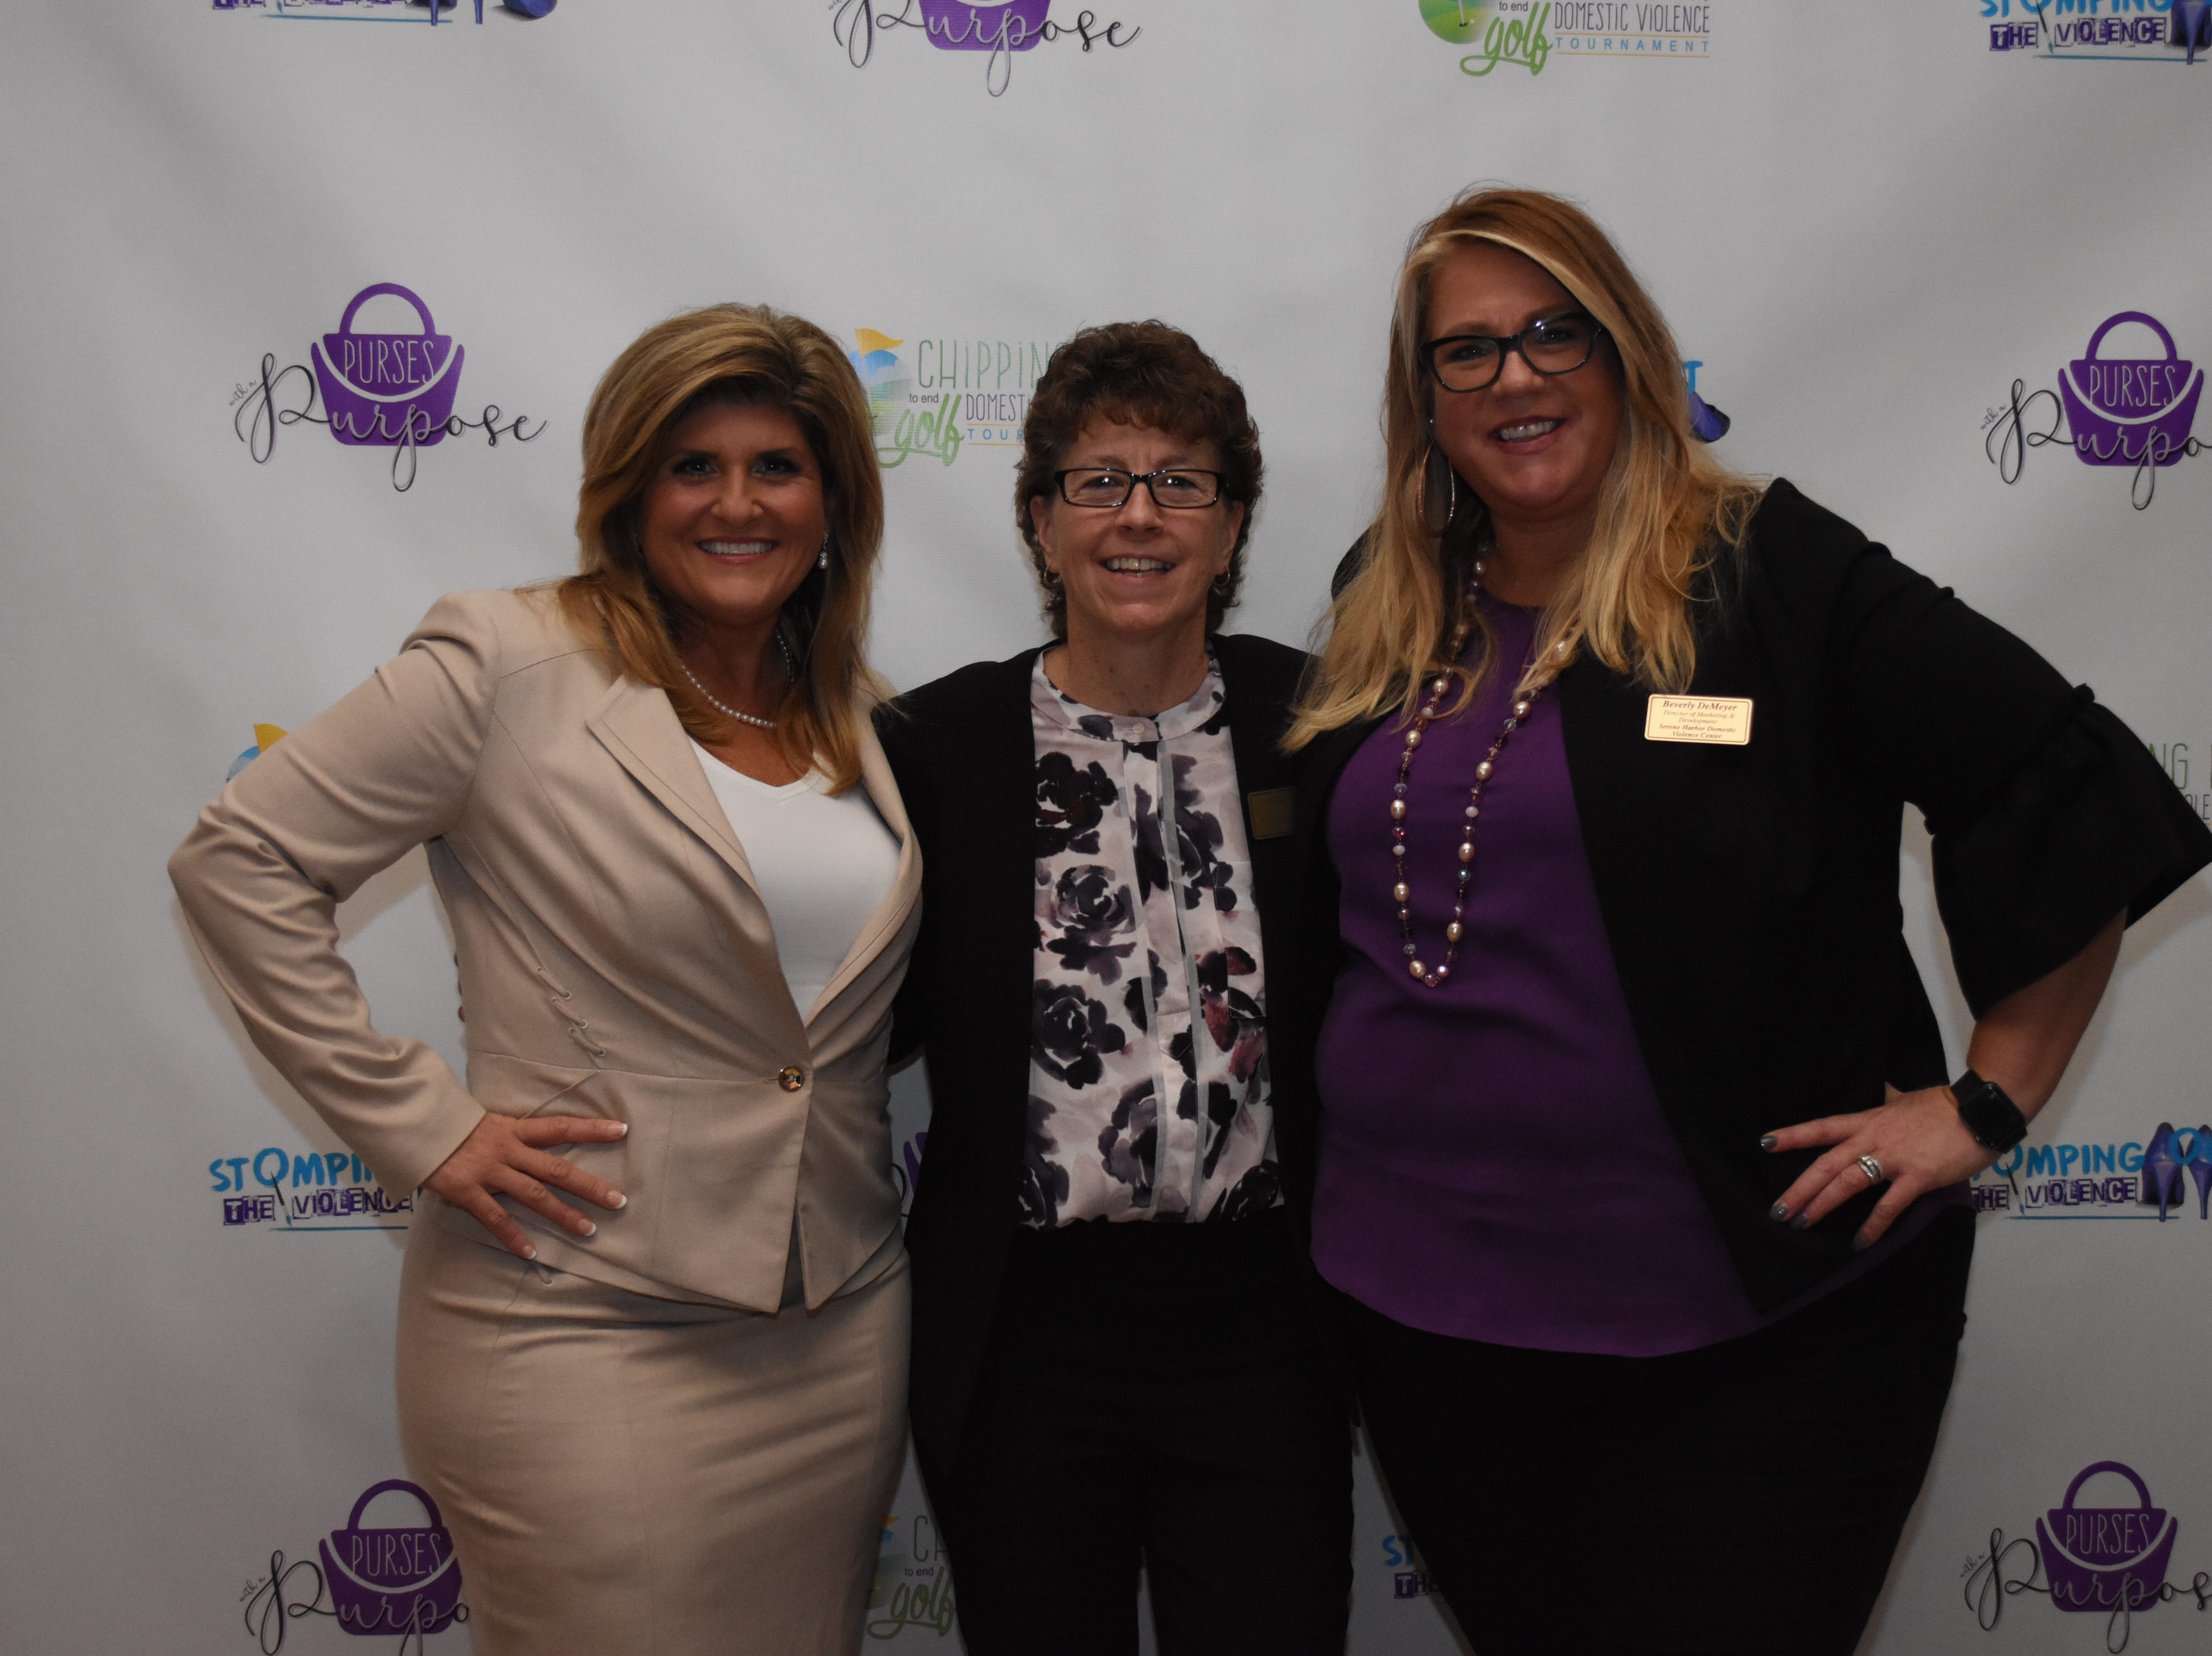 Former mayor of Cape Coral Marni Sawicki, Melody Keeth CEO of Serene Harbor, and Director of Marketing with Serene Harbor Beverly DeMeyer pose for a photo.